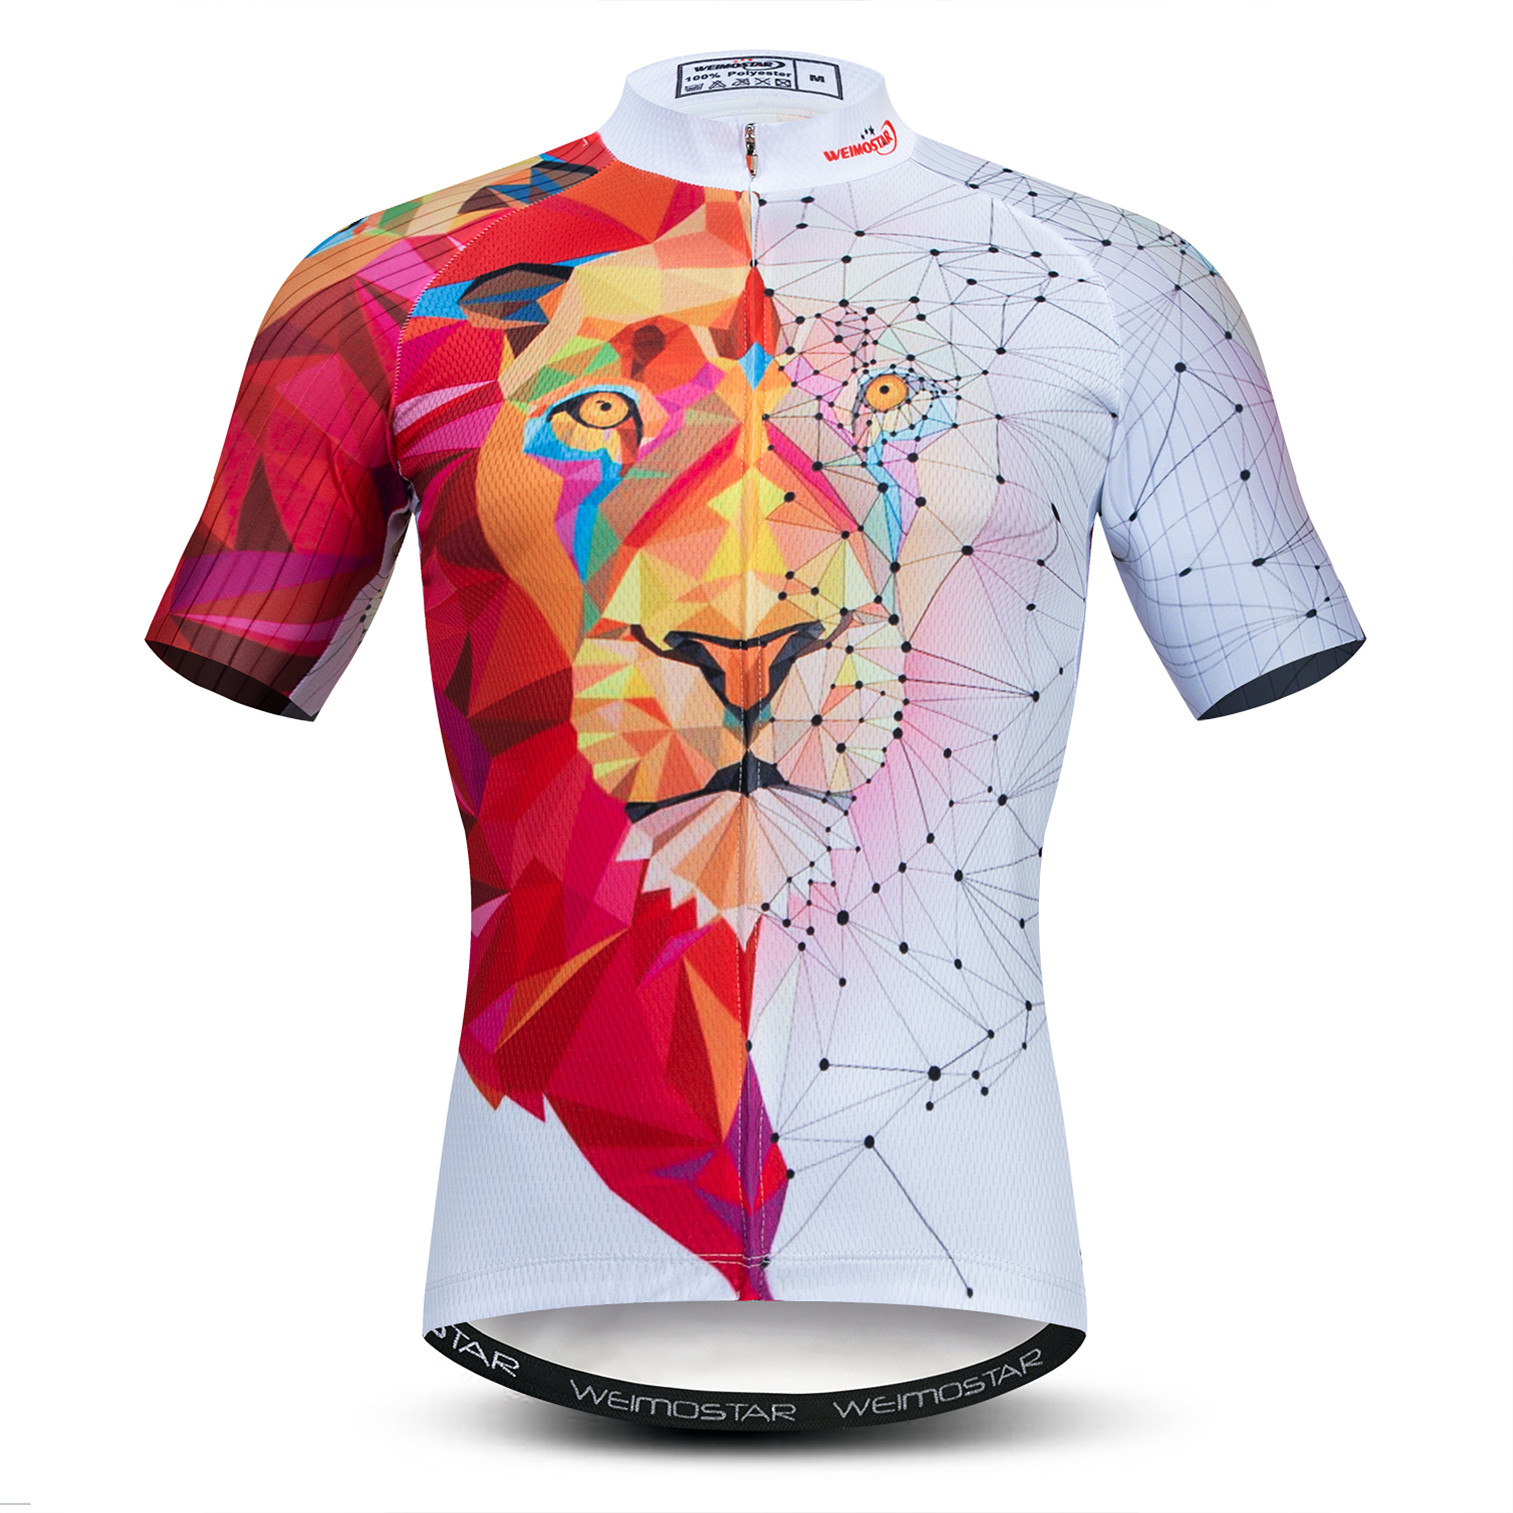 2021 Cycling Jersey Men Bike Road MTB Bicycle Shirt Ropa Ciclismo Maillot Racing Top Mountain Riding Clothing  Summer White Red